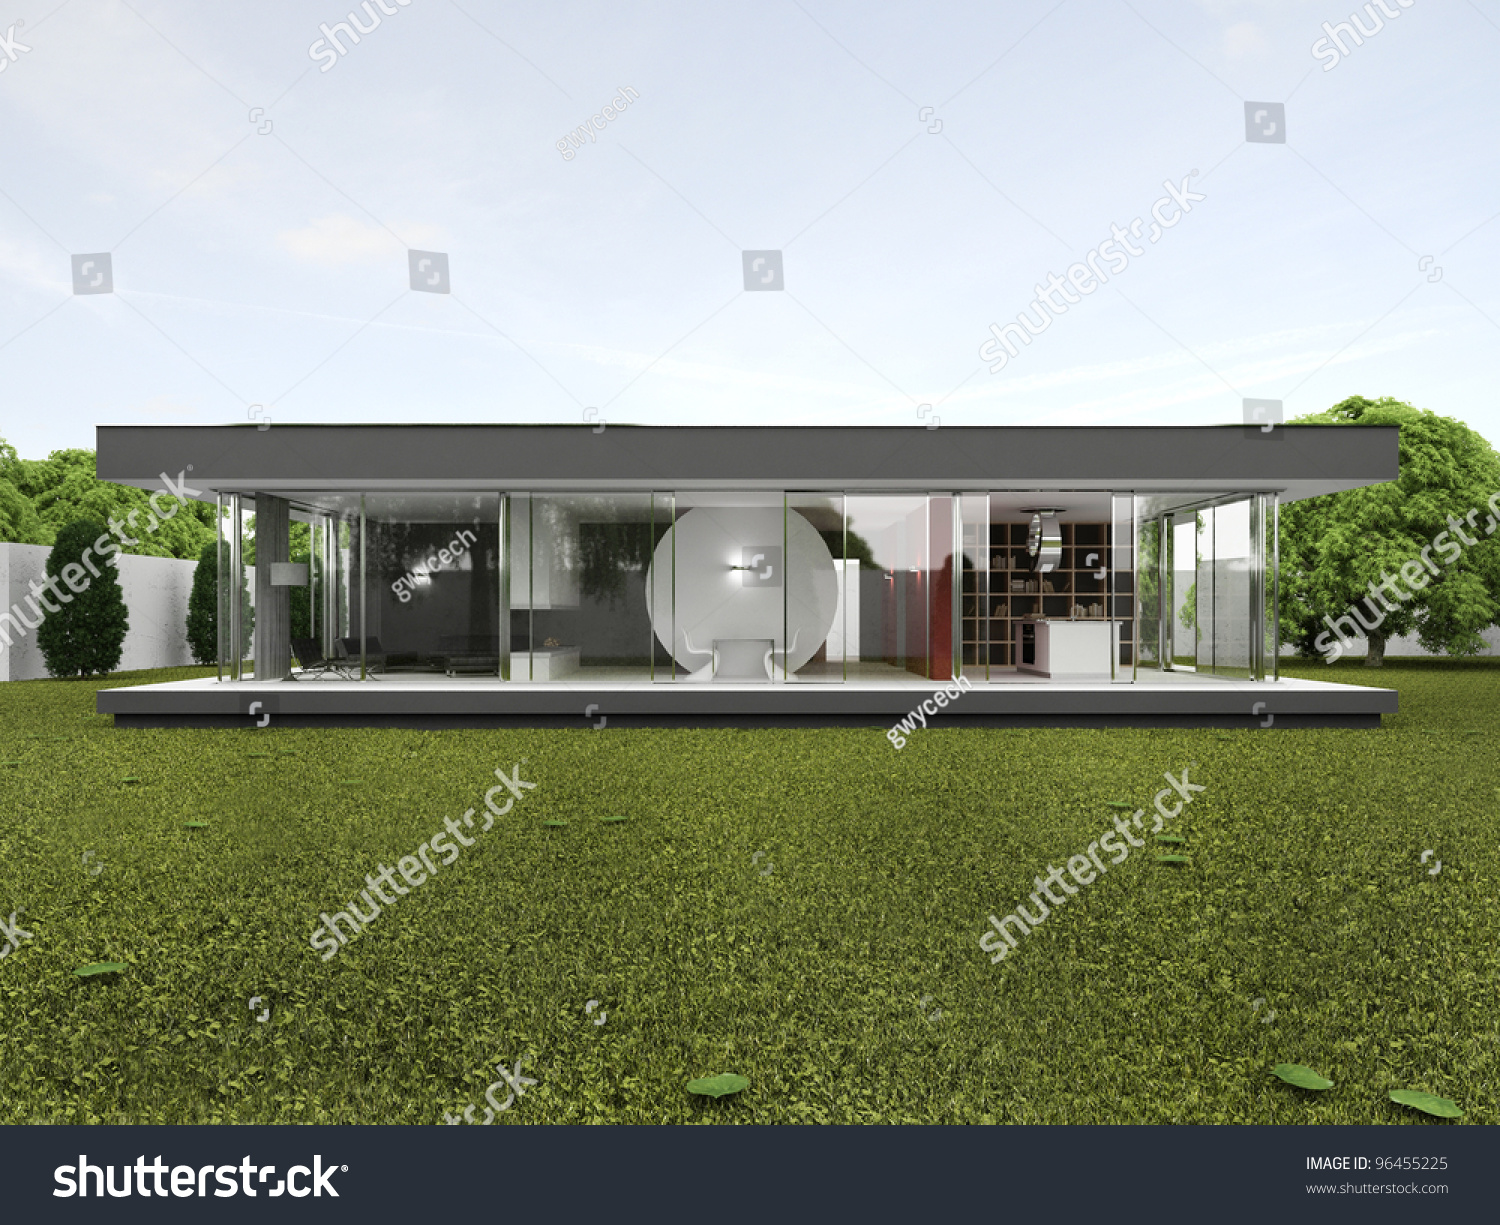 Backyard Of Very Modern House - Bungalow Design, rchitecture ... - ^